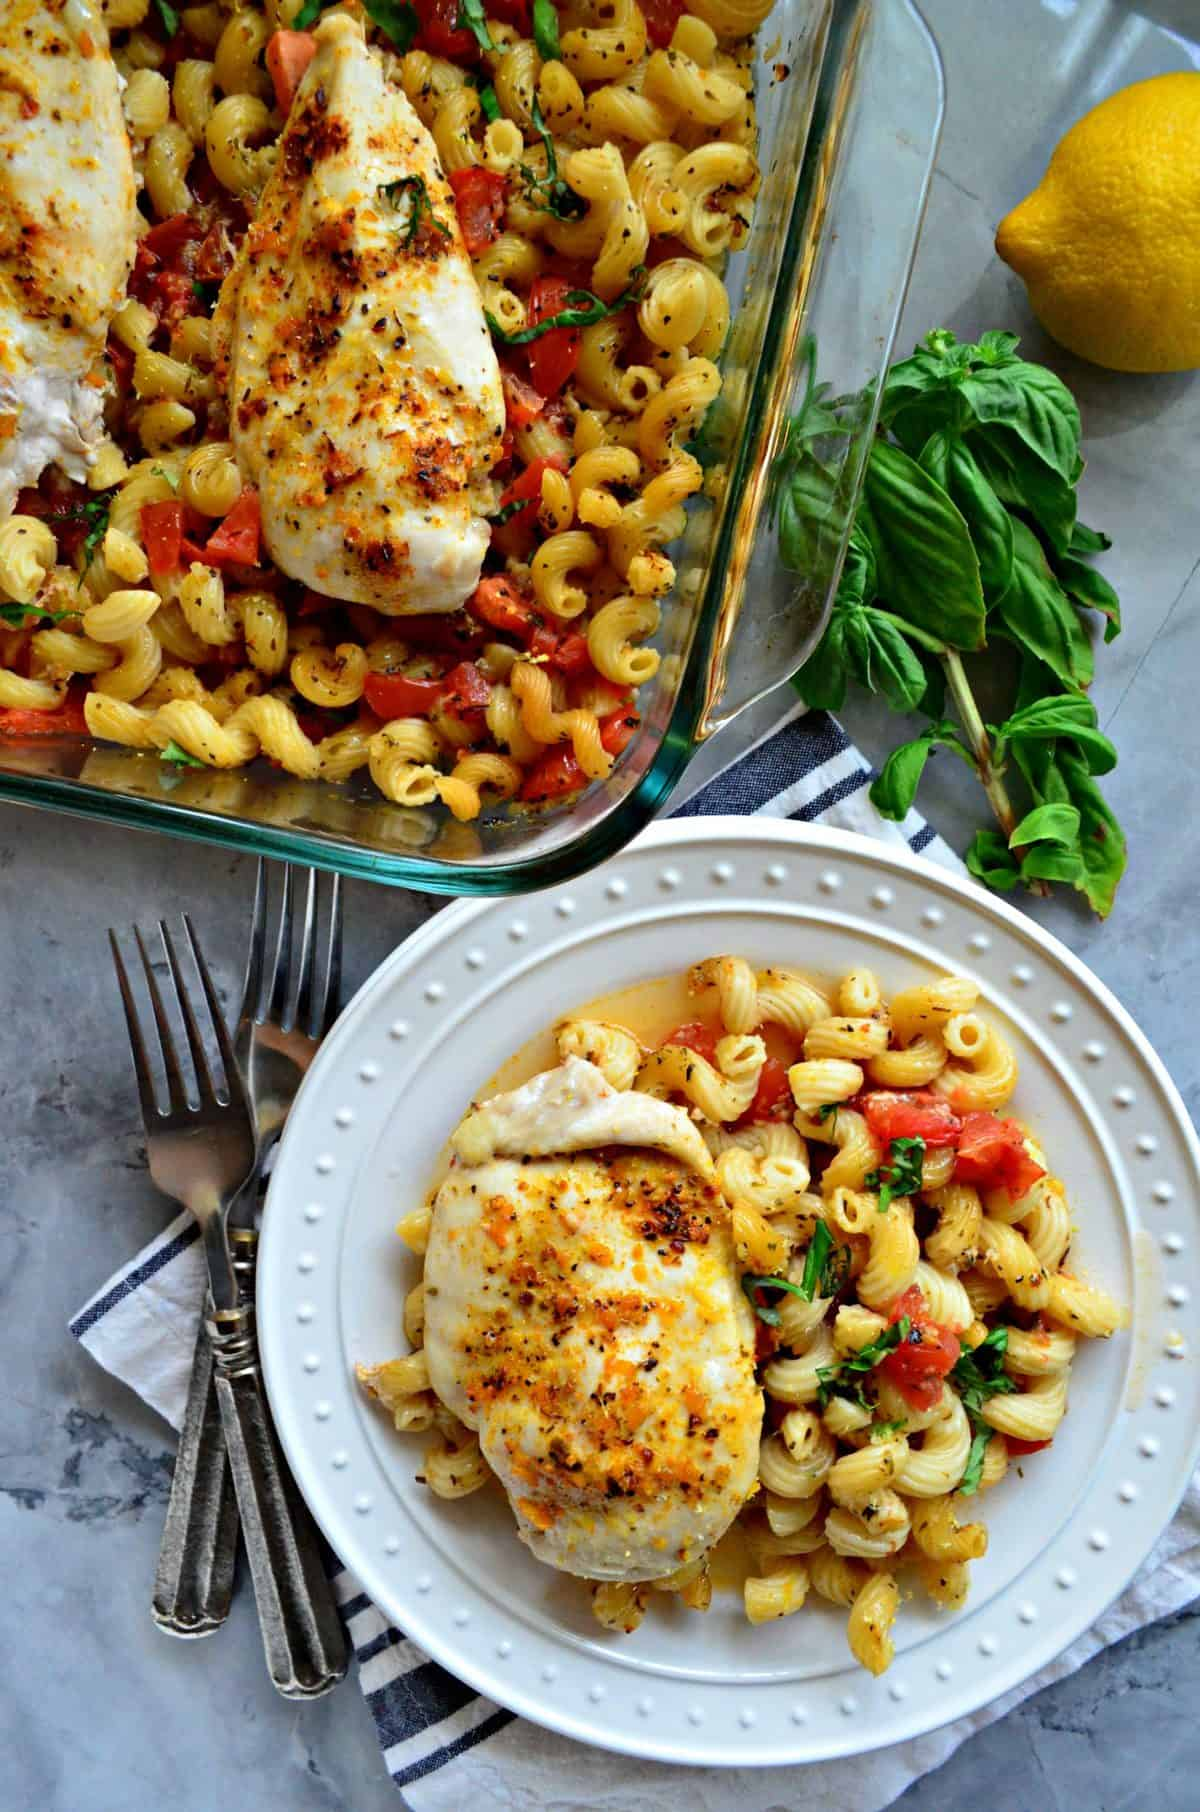 plated chicken breast and cavatapi with herbs and tomatoes next to baking dish of leftovers.